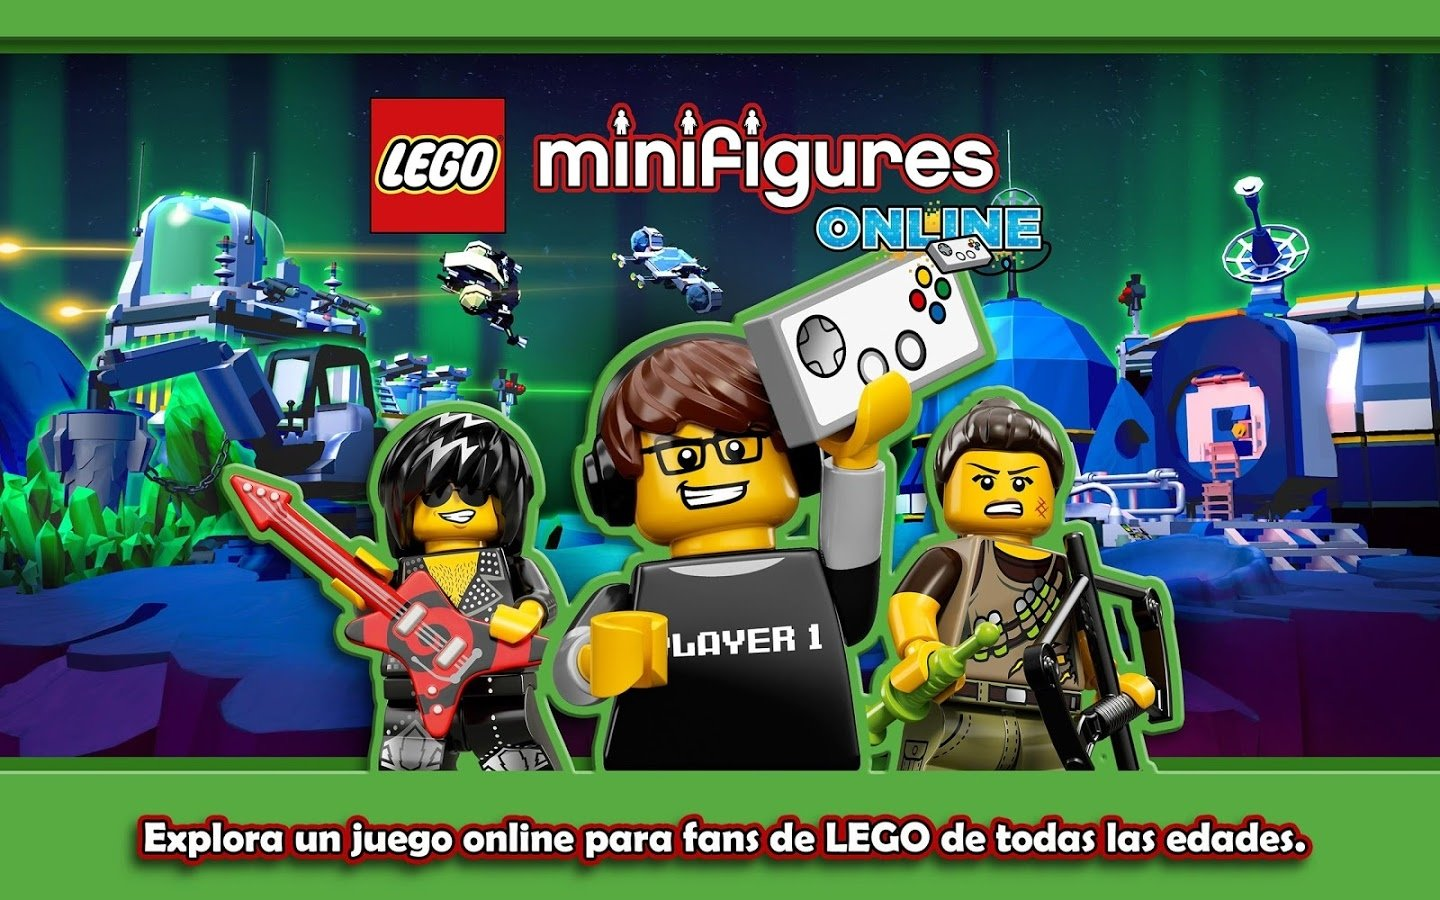 LEGO Minifigures Online 1 0 549448 - Download for Android APK Free